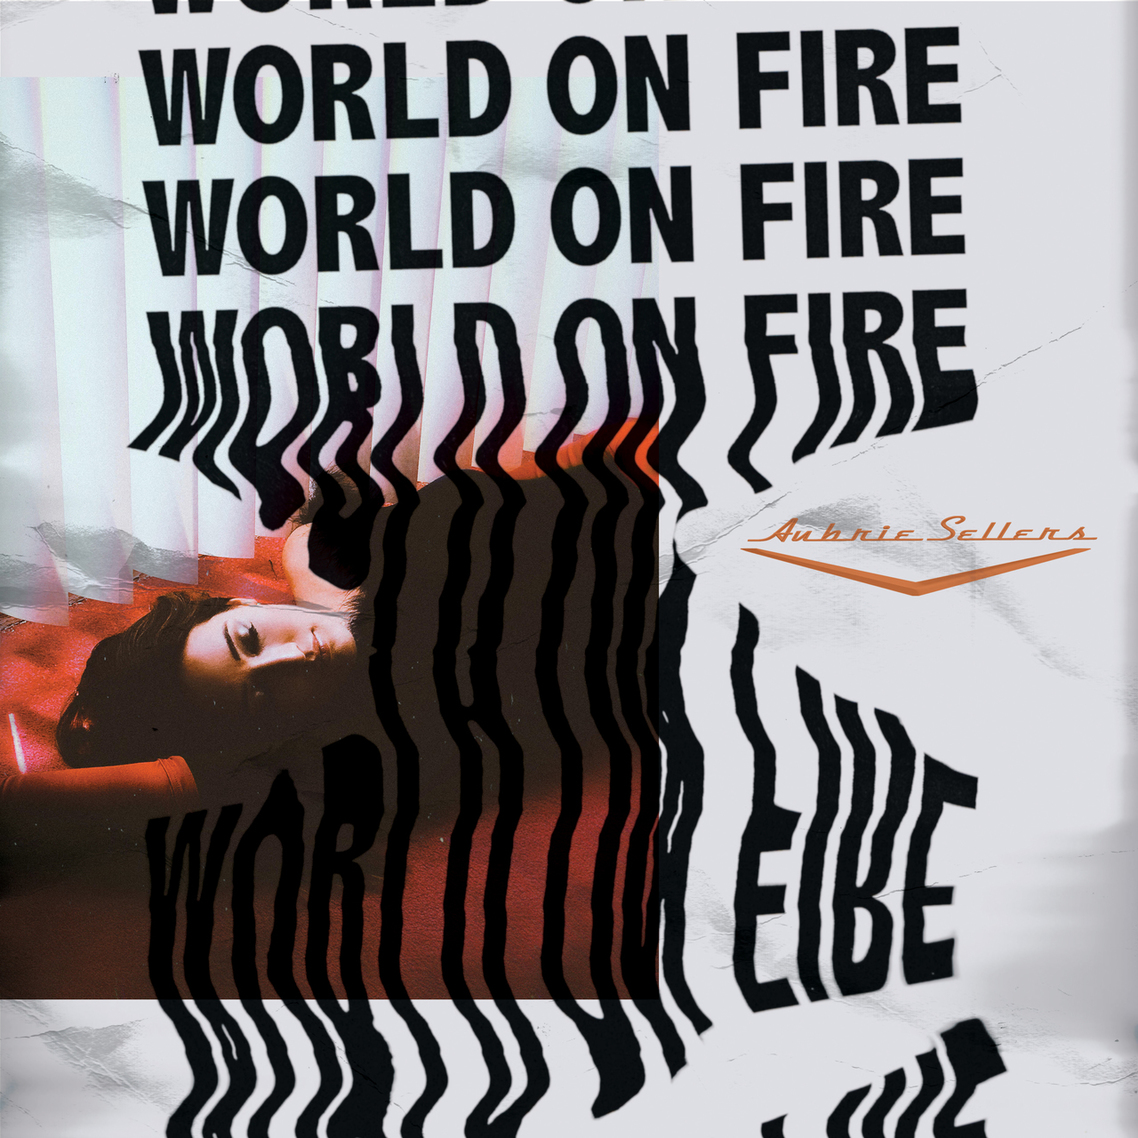 aubrie-sellers-world-on-fire